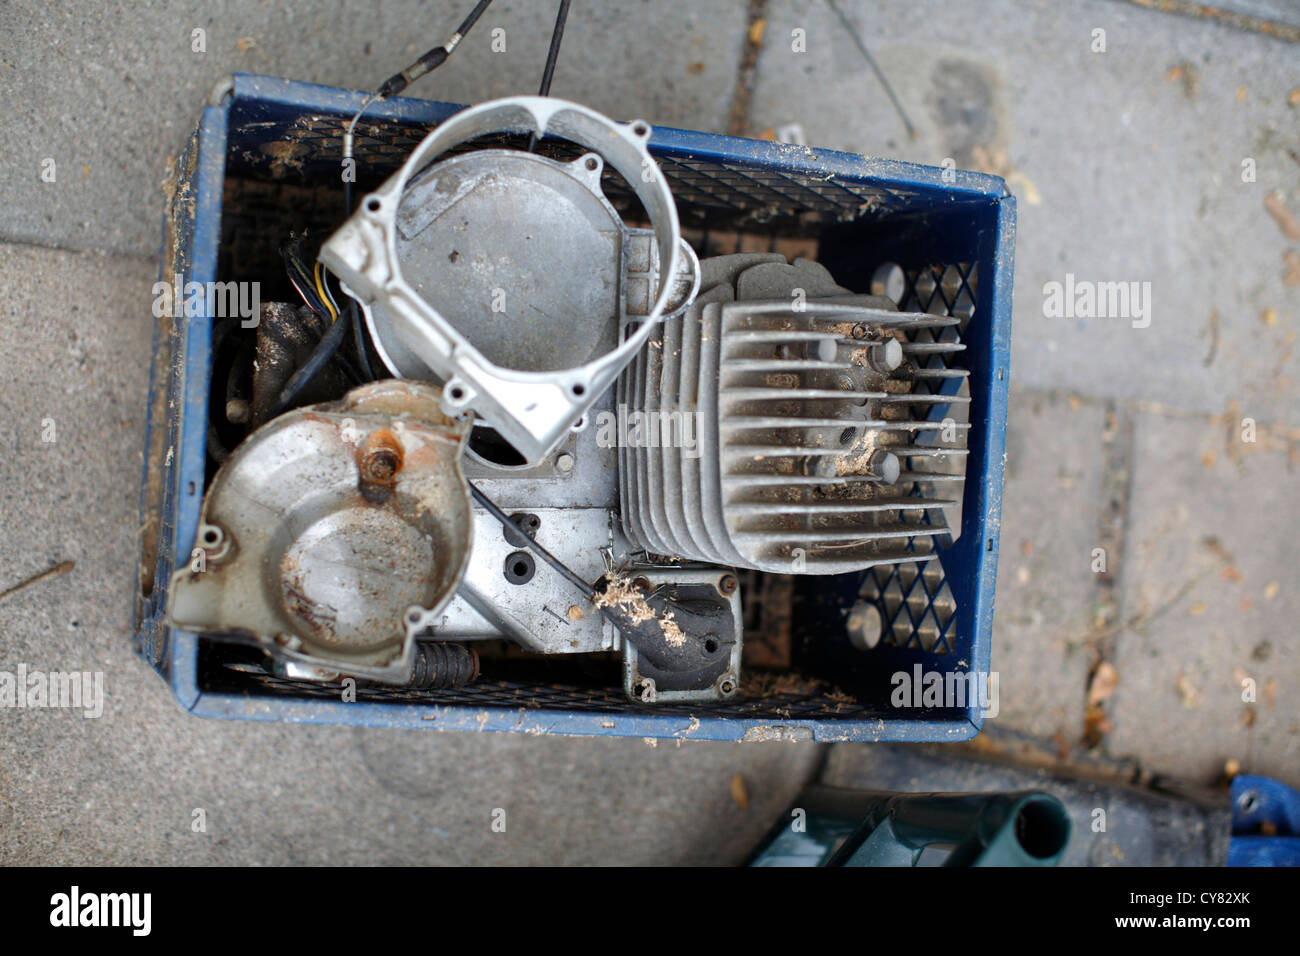 Engine in a crate. - Stock Image